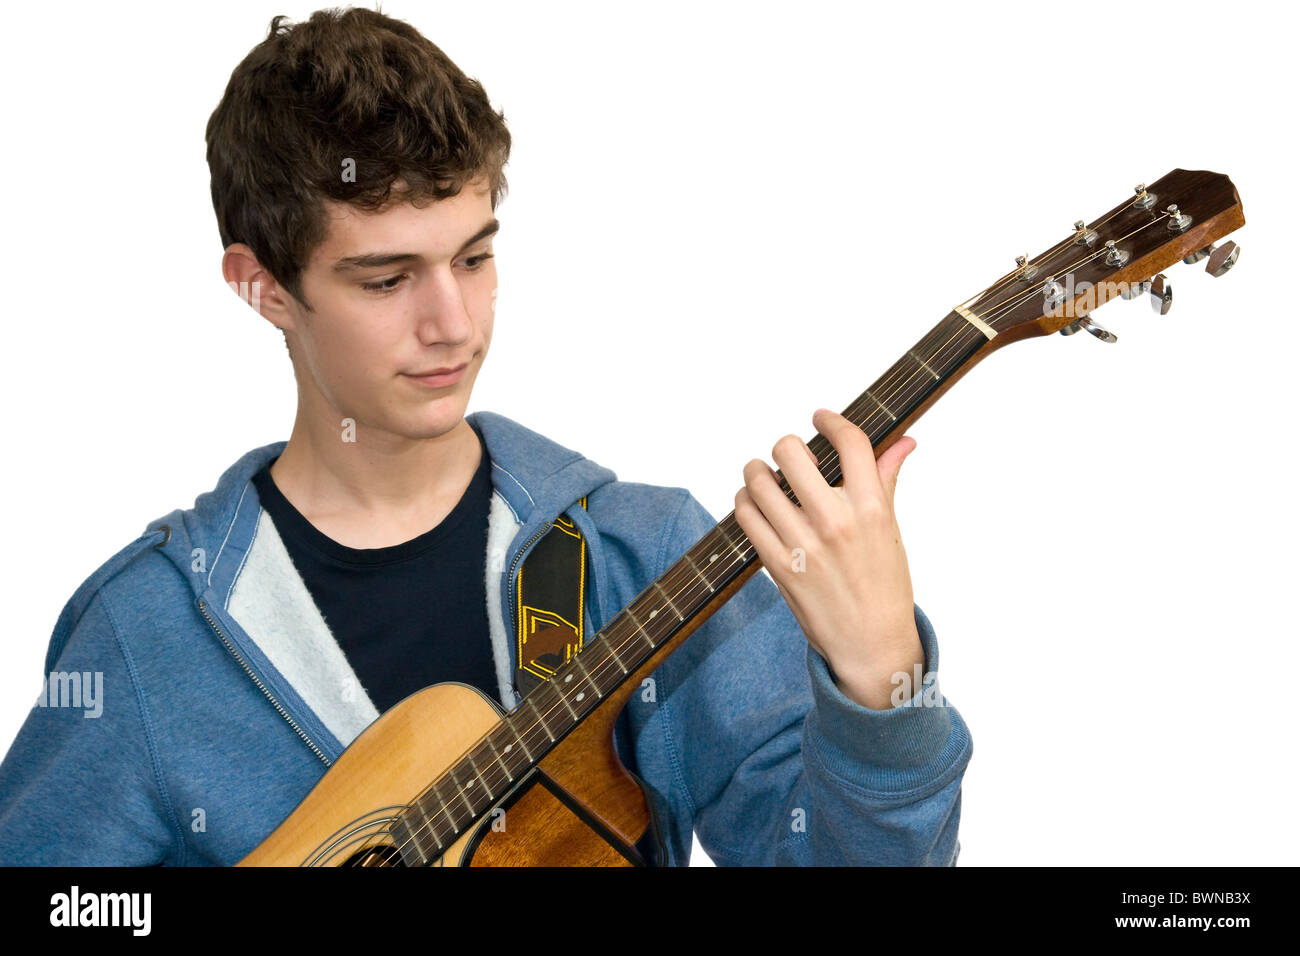 Teenager playing acoustic guitar on white background - Stock Image